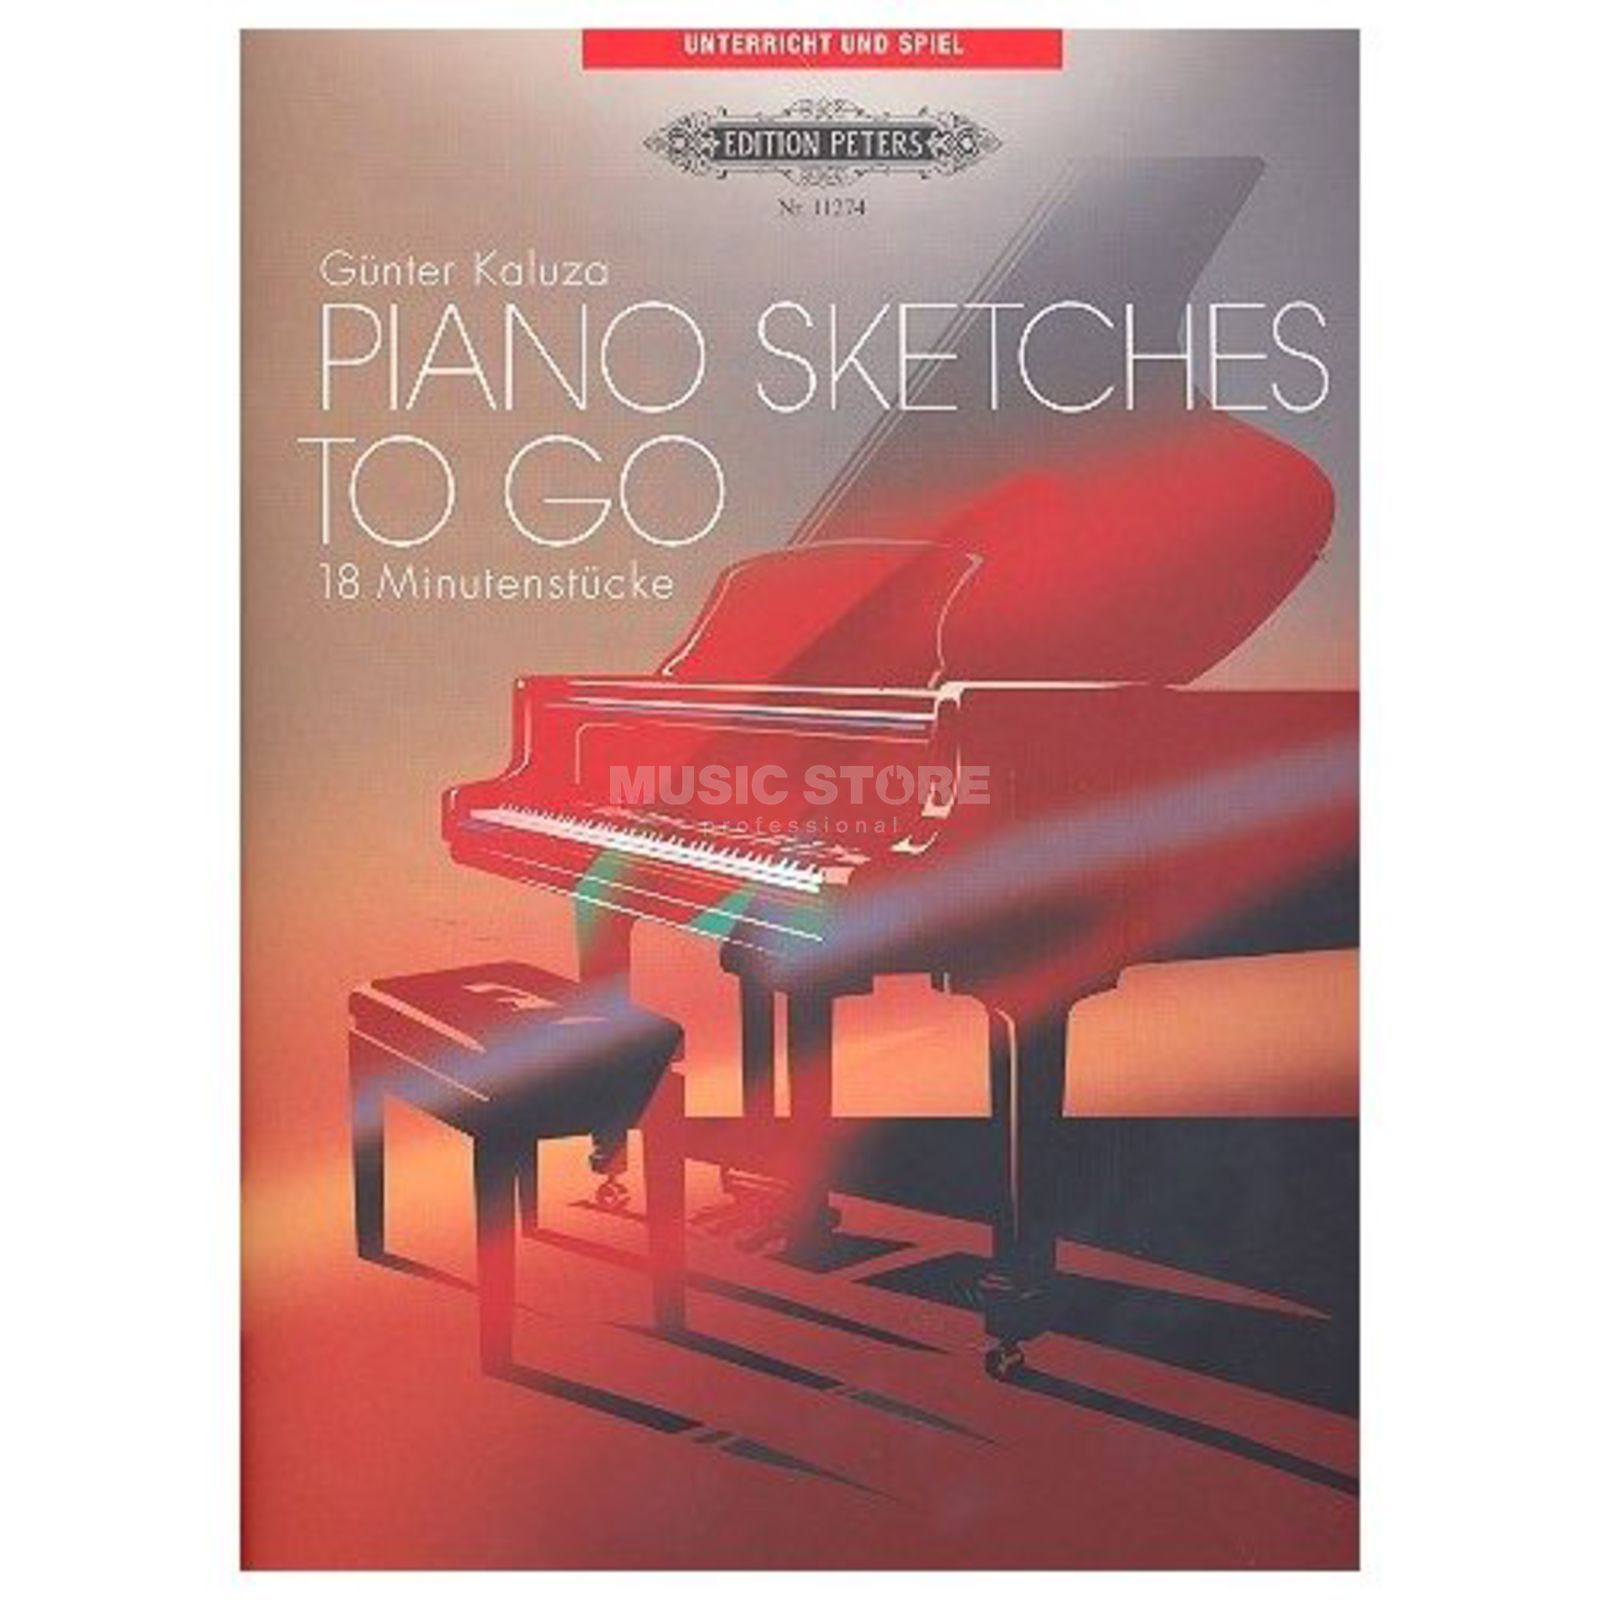 Edition Peters Piano Sketches, Klavier Günter Kaluza Produktbild